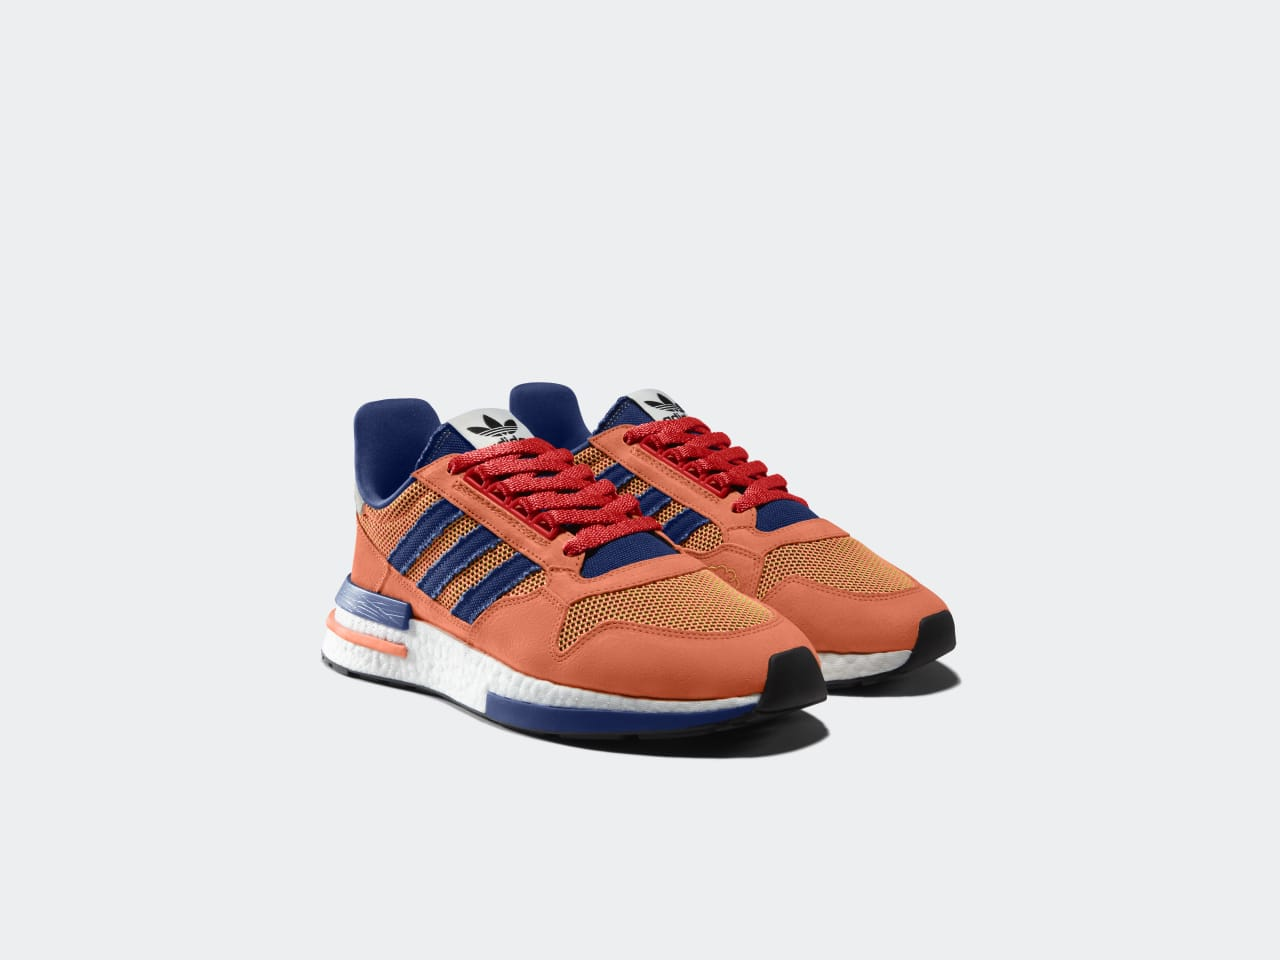 size 40 d8250 0360d Dragon Ball Z x Adidas Goku Frieza Collection Release Date D97046 D97048   Sole Collector